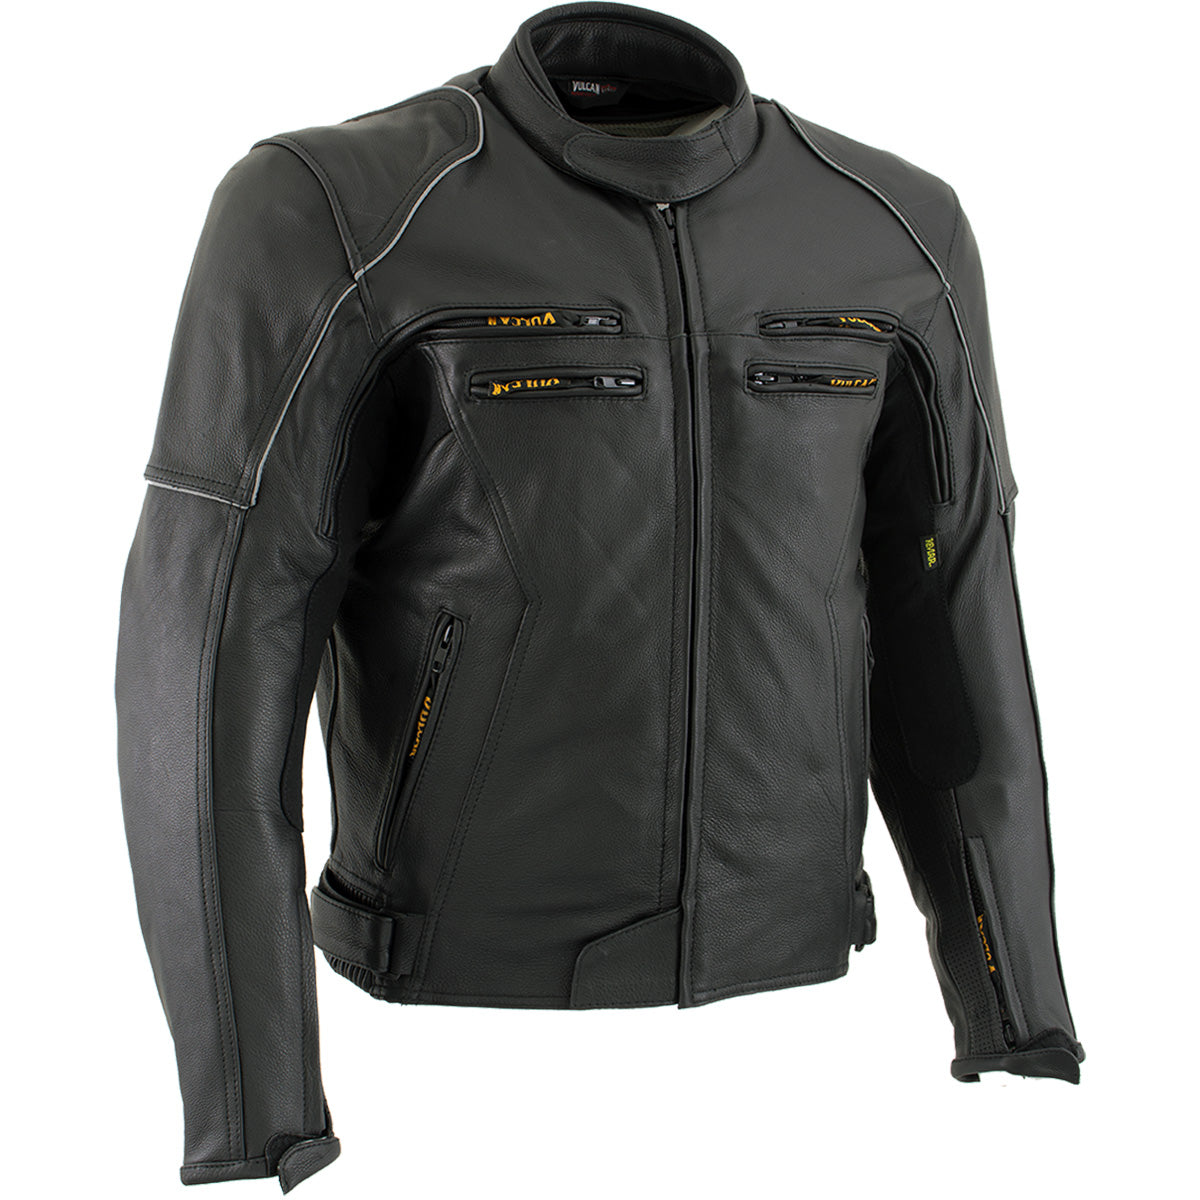 Vulcan VNE 98431 'Ace' Men's Black Leather Armored Motorcycle Jacket